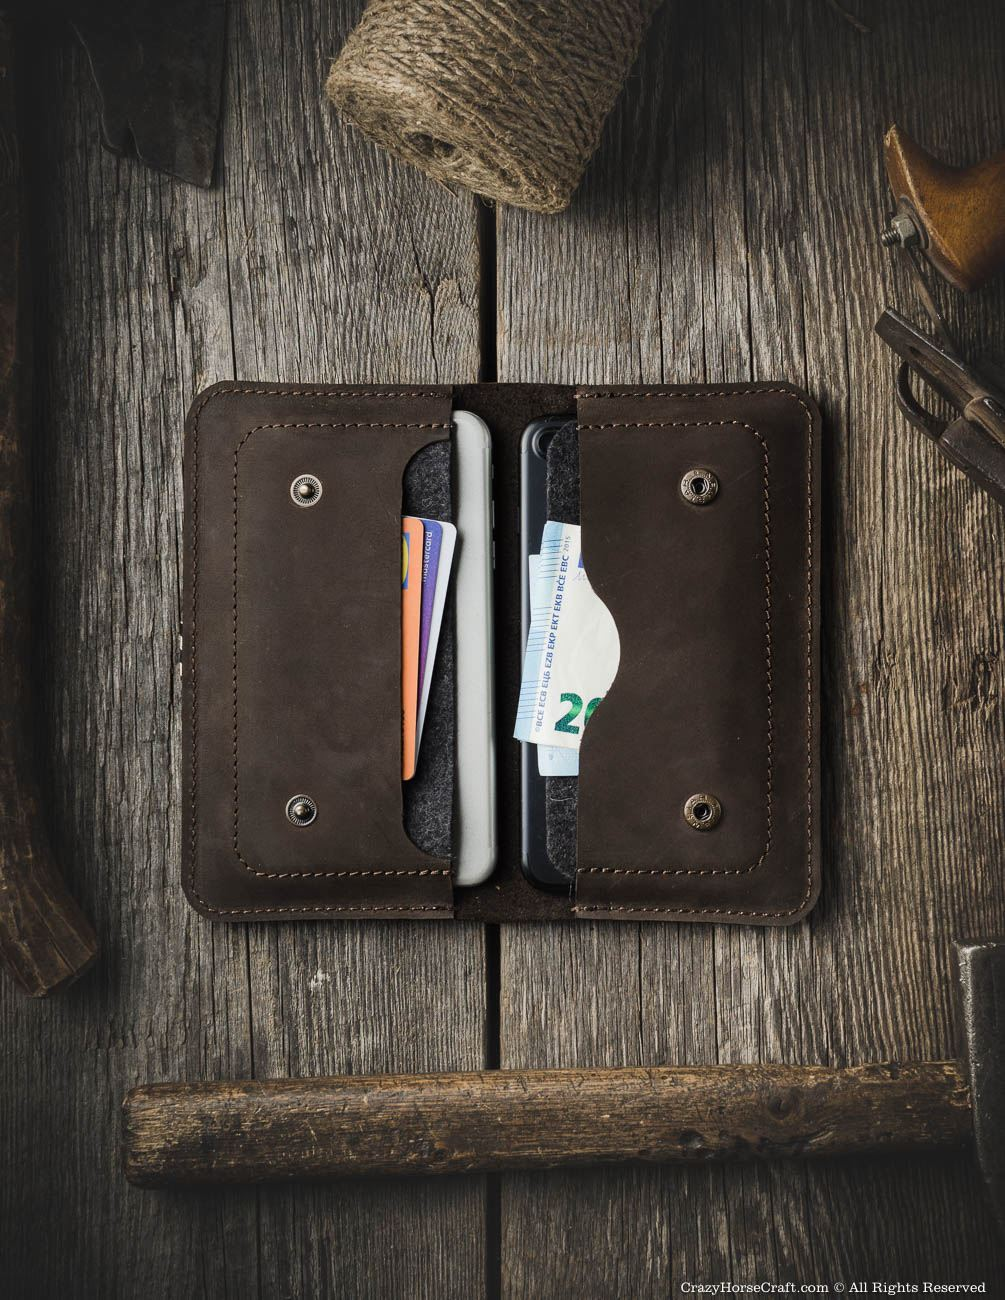 iPhone Xs, iPhone Xs Max case, two iphones wallet, big vintage wallet, old wallet, handmade iPhone Xs case, Leather iphone 8 wallet card holder cash, brown inside